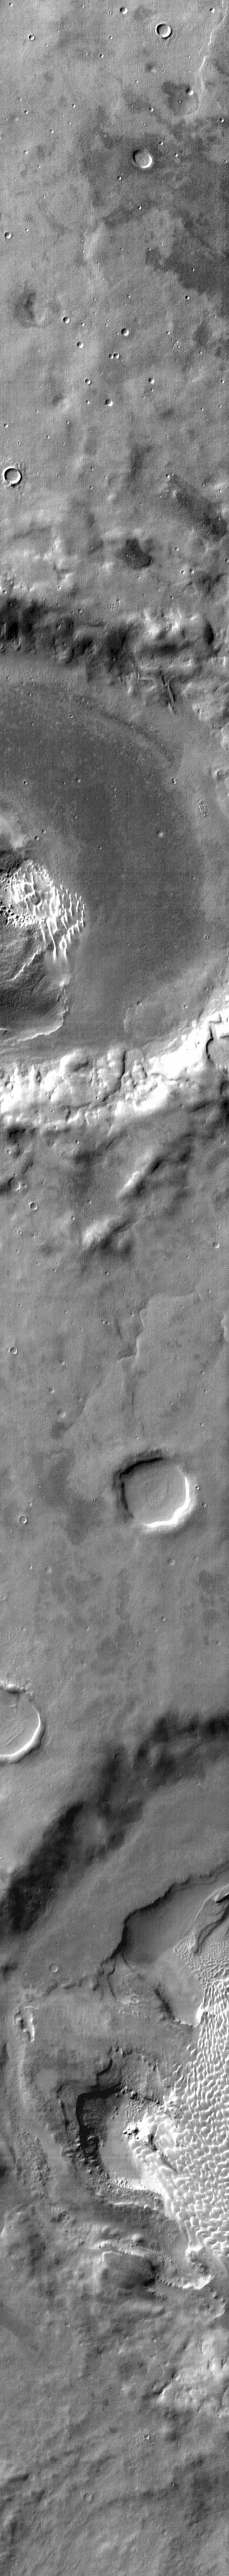 This infrared image from NASA's 2001 Mars Odyssey spacecraft shows part of the dune field on the floor of Rabe Crater. The dunes are 'brighter' than the surrounding material, indicating that they are warmer.